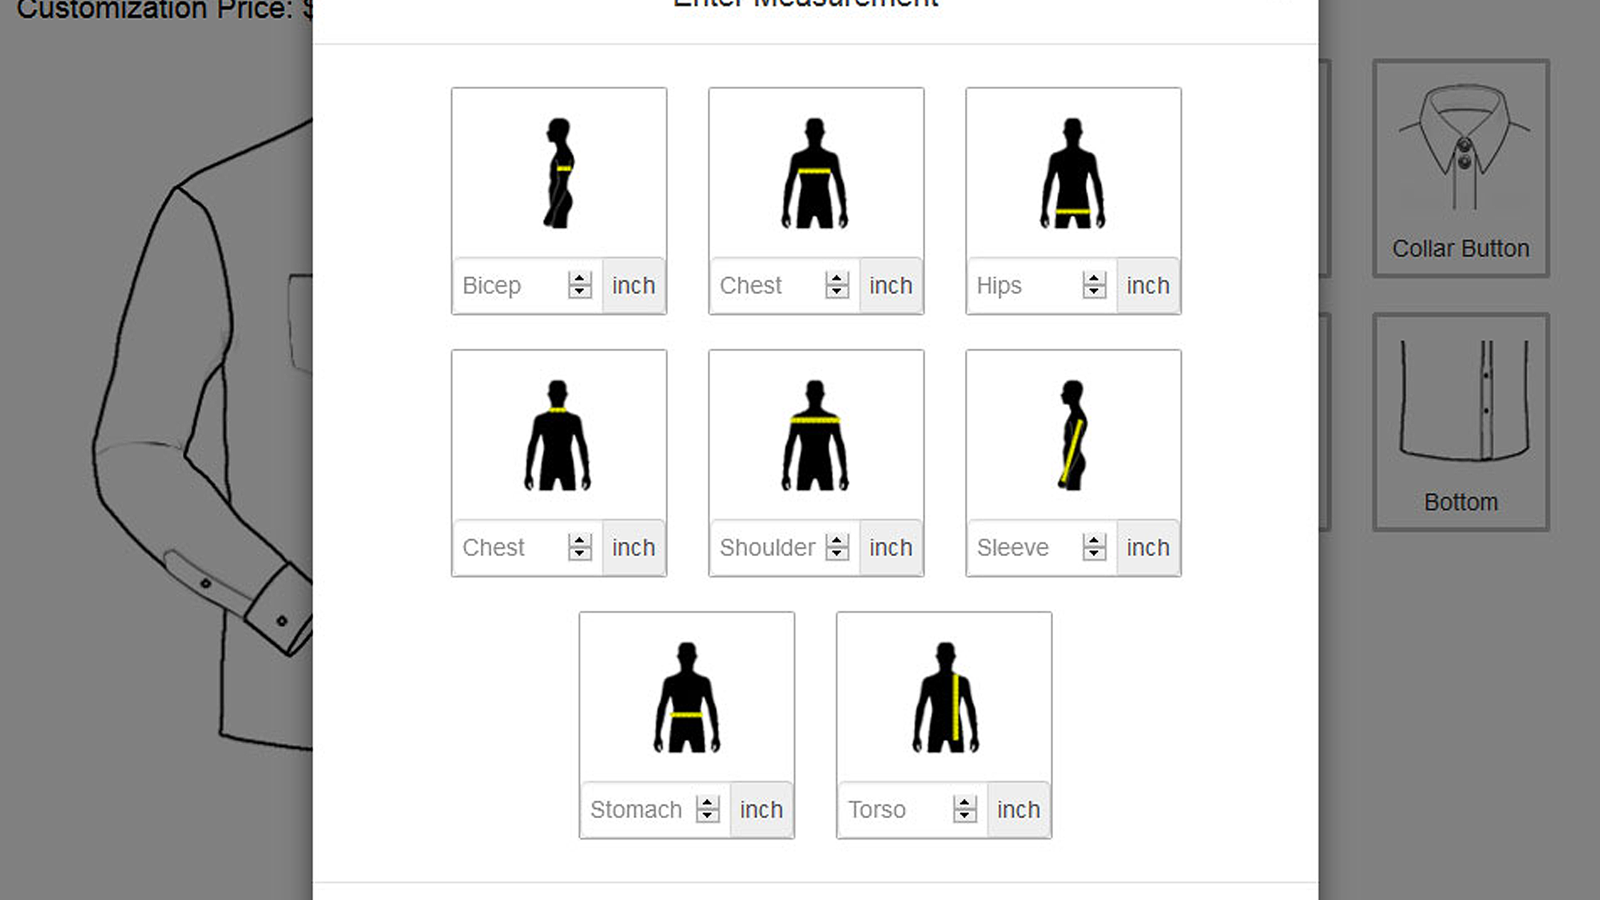 Tailor Shirt measurement entry in the design panel